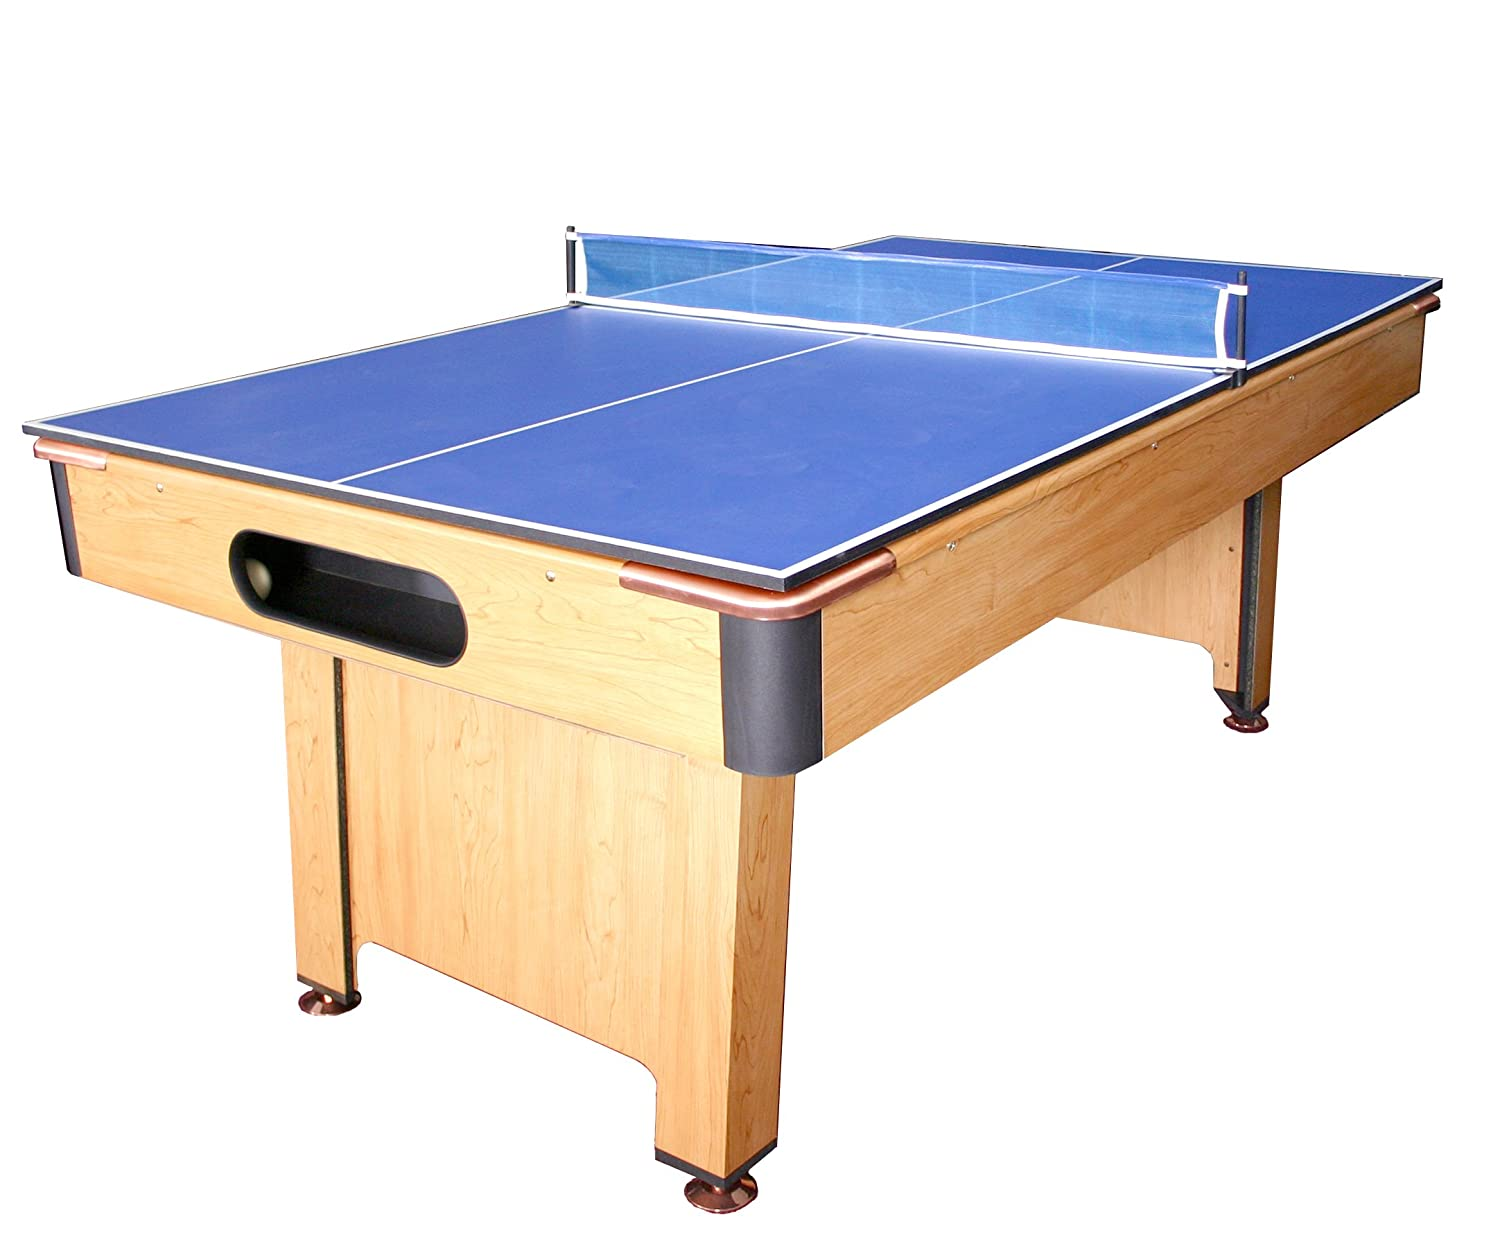 Amazon.com : Minnesota Fats MFT200CT Fairfax Billiard Table with ...